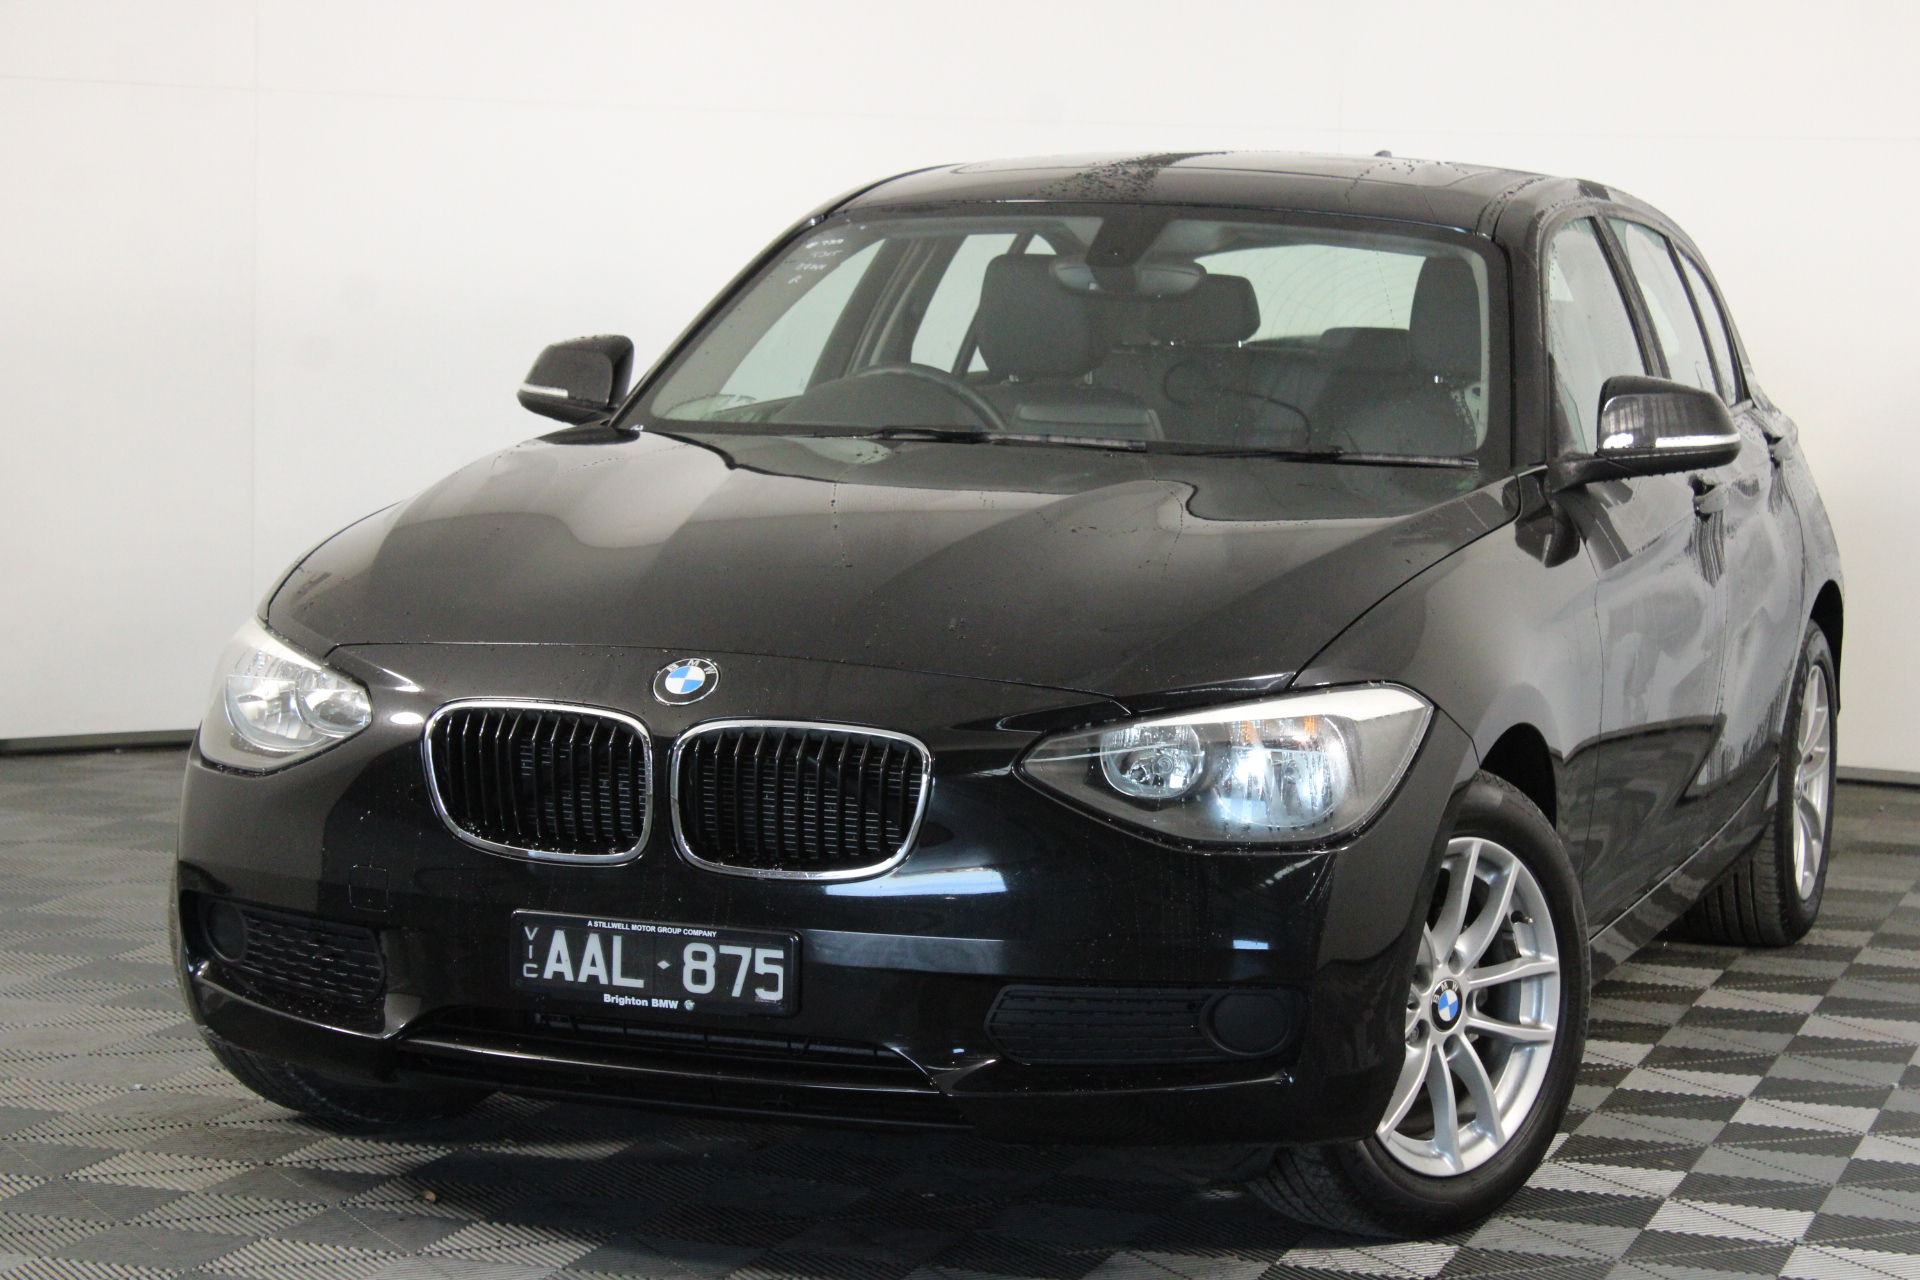 2013 BMW 1 Series 116i F20 Automatic - 8 Speed Hatchback